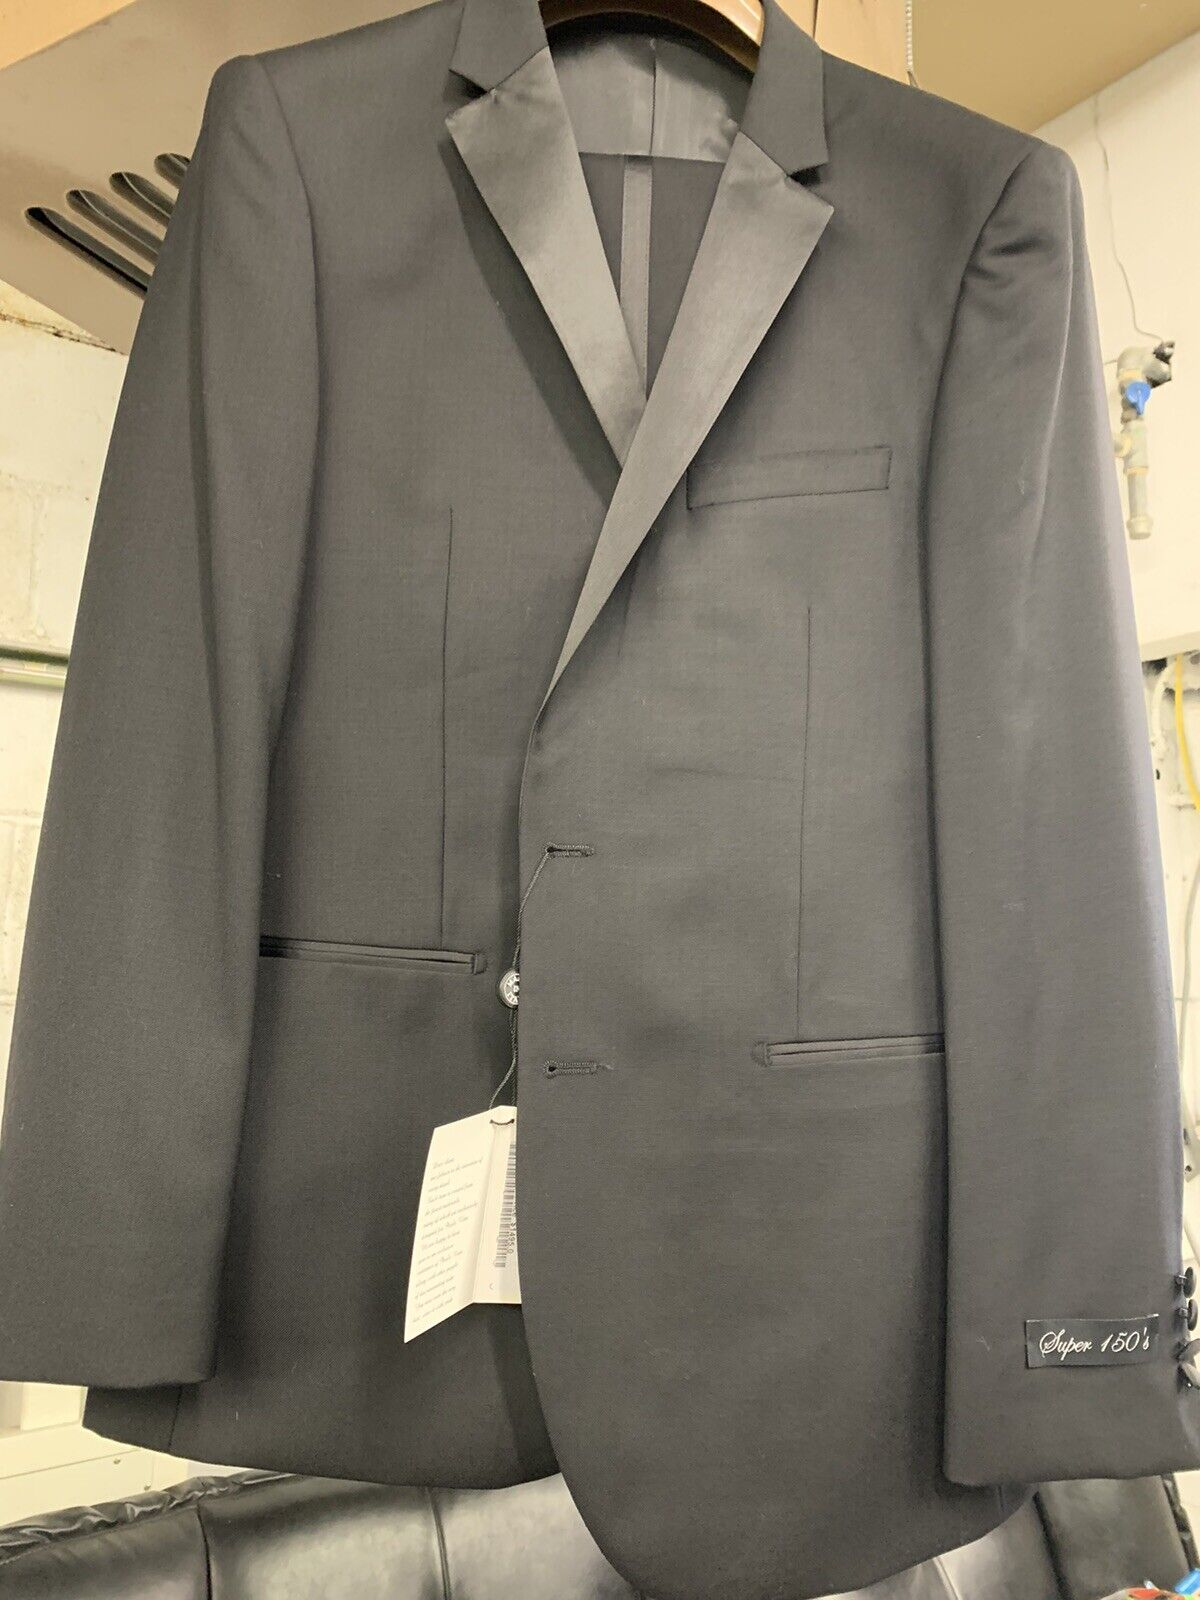 New 42R Men's Black Tuxedo 100% Wool Super 150 Made in Italy Retail